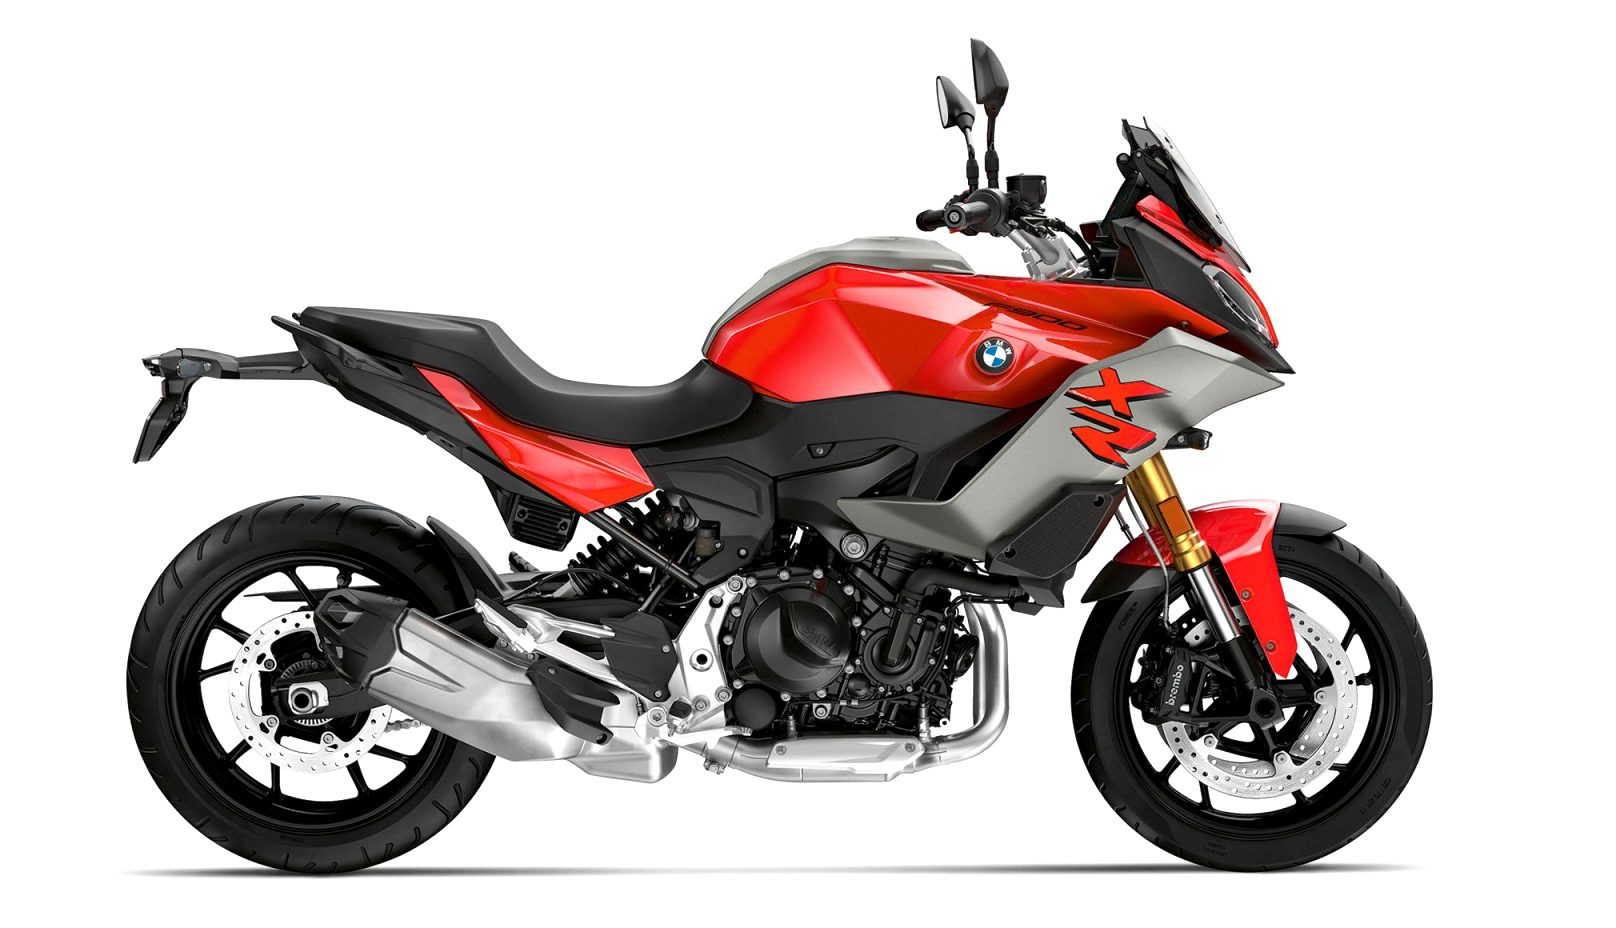 2021 BMW motorcycles Specs and Review